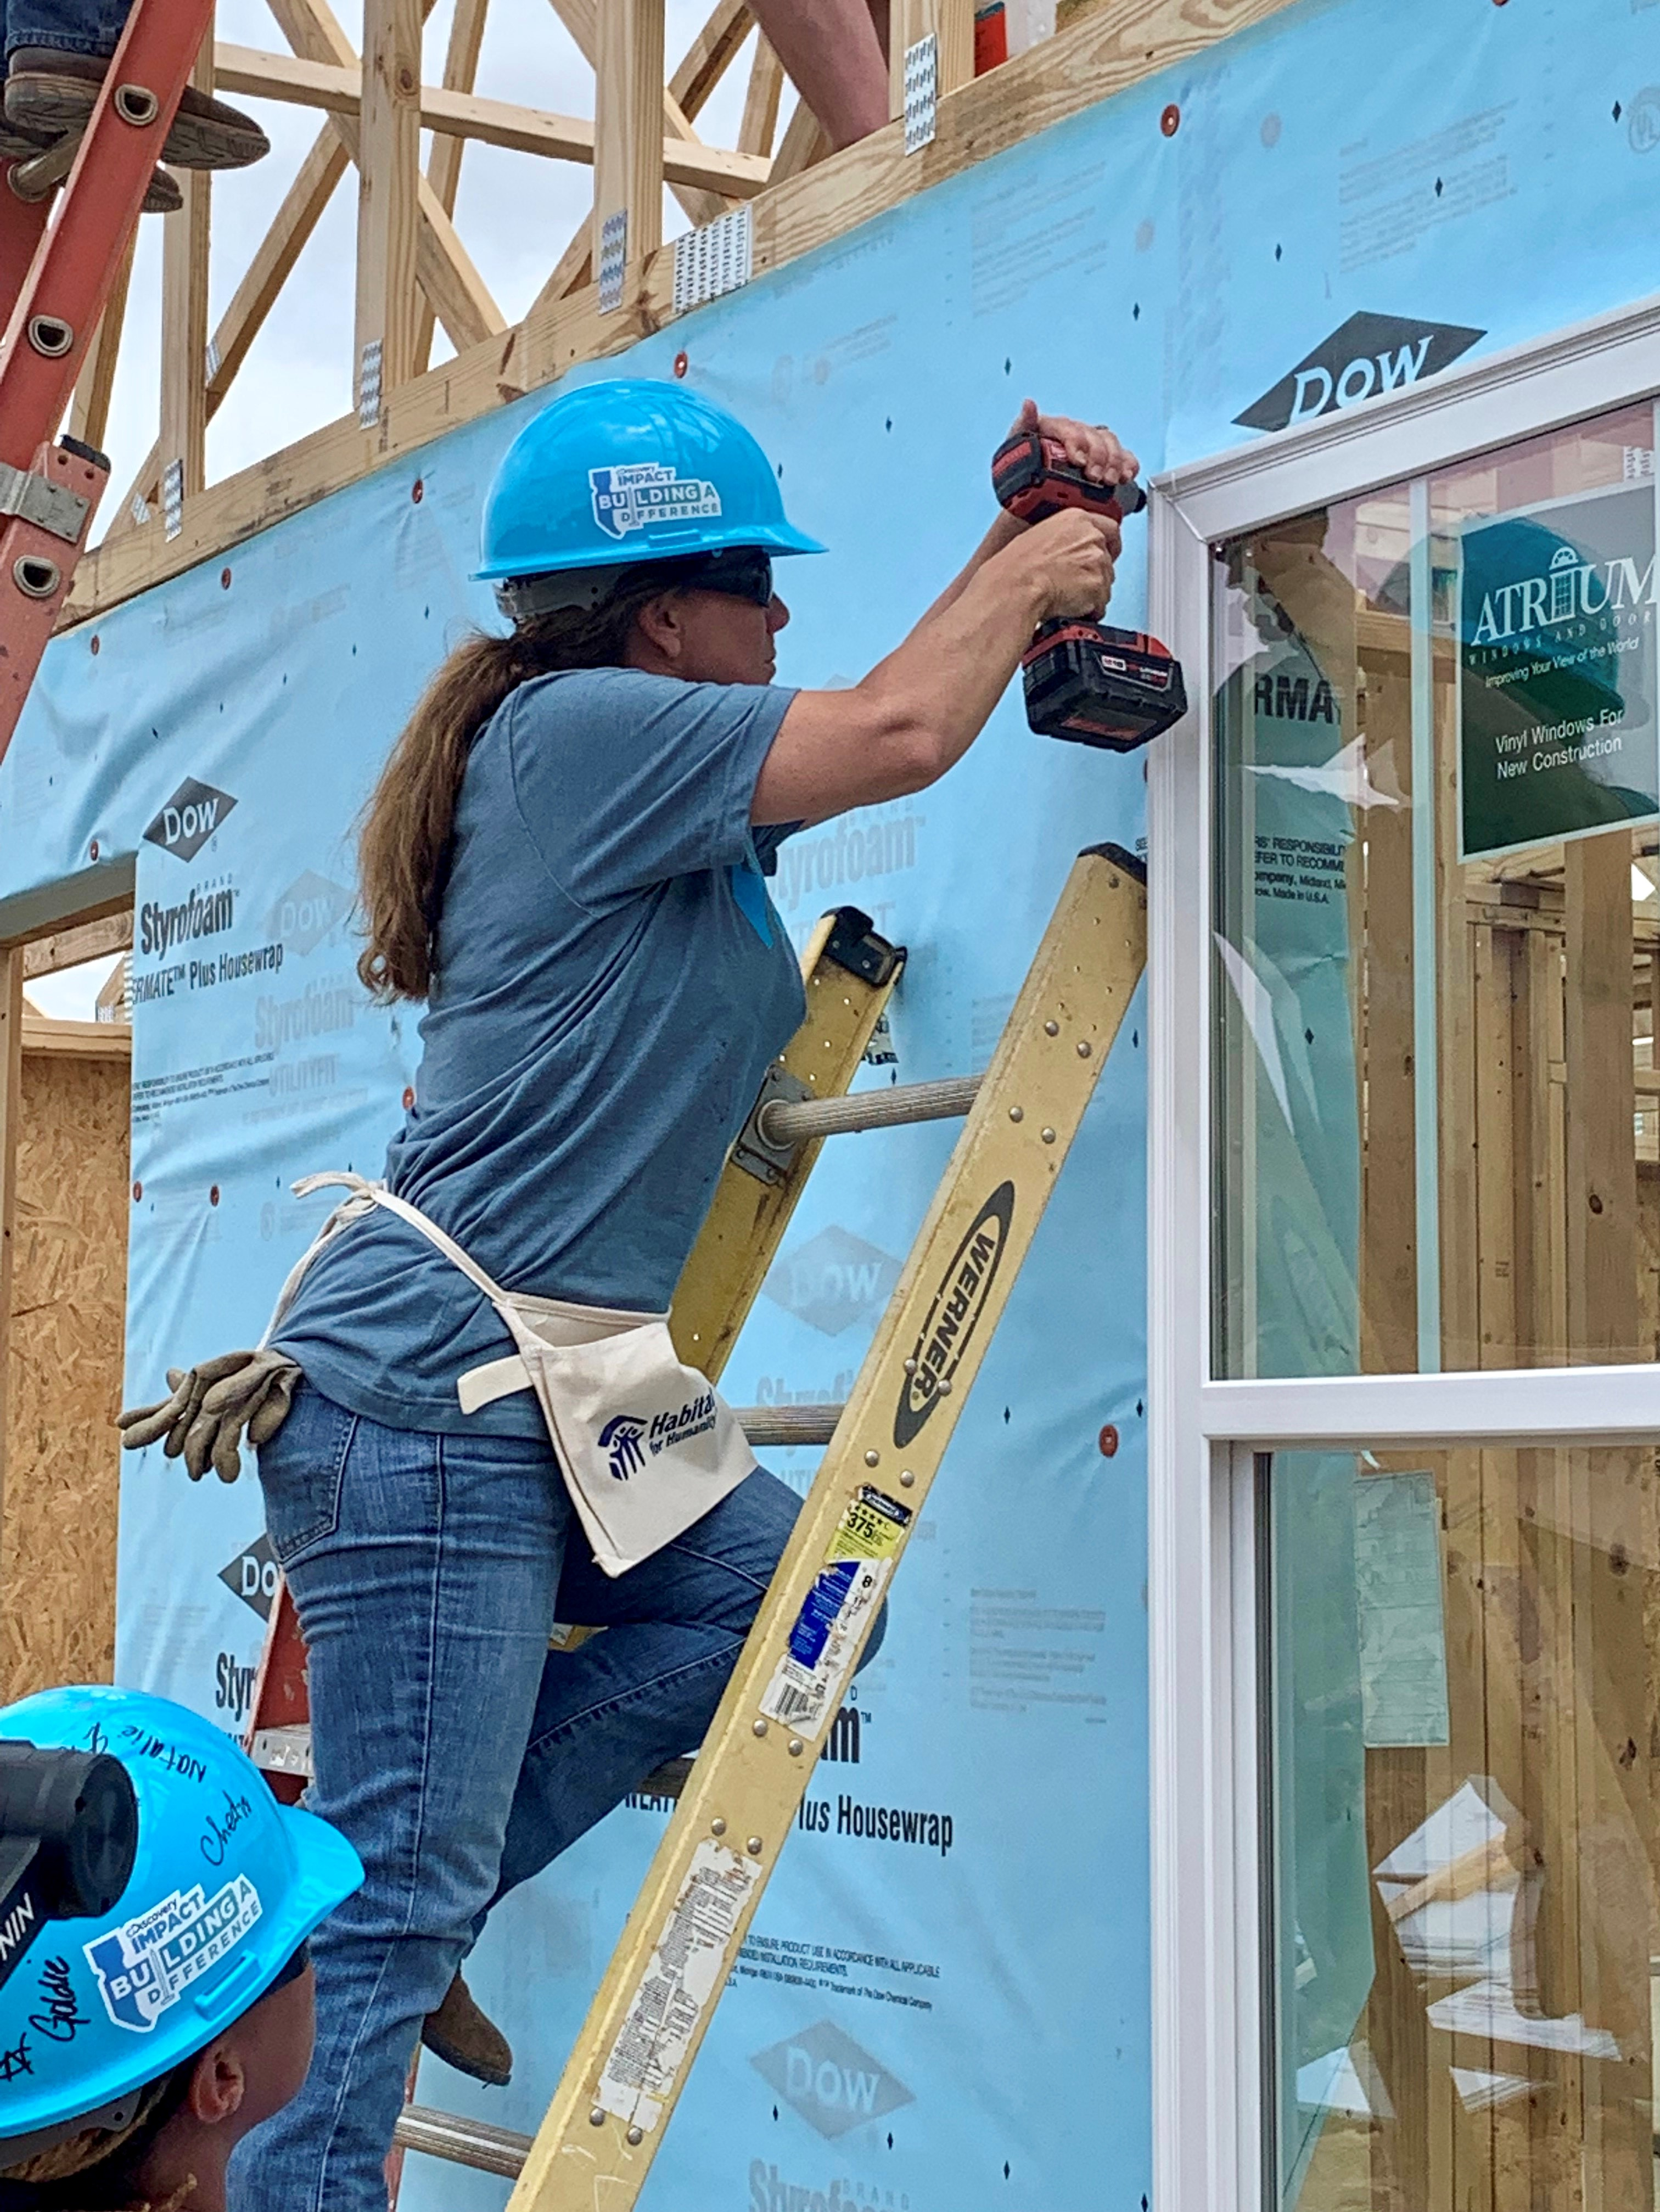 First Lady Maria participates in home build with Habitat for Humanity sponsored by Discovery, Inc.